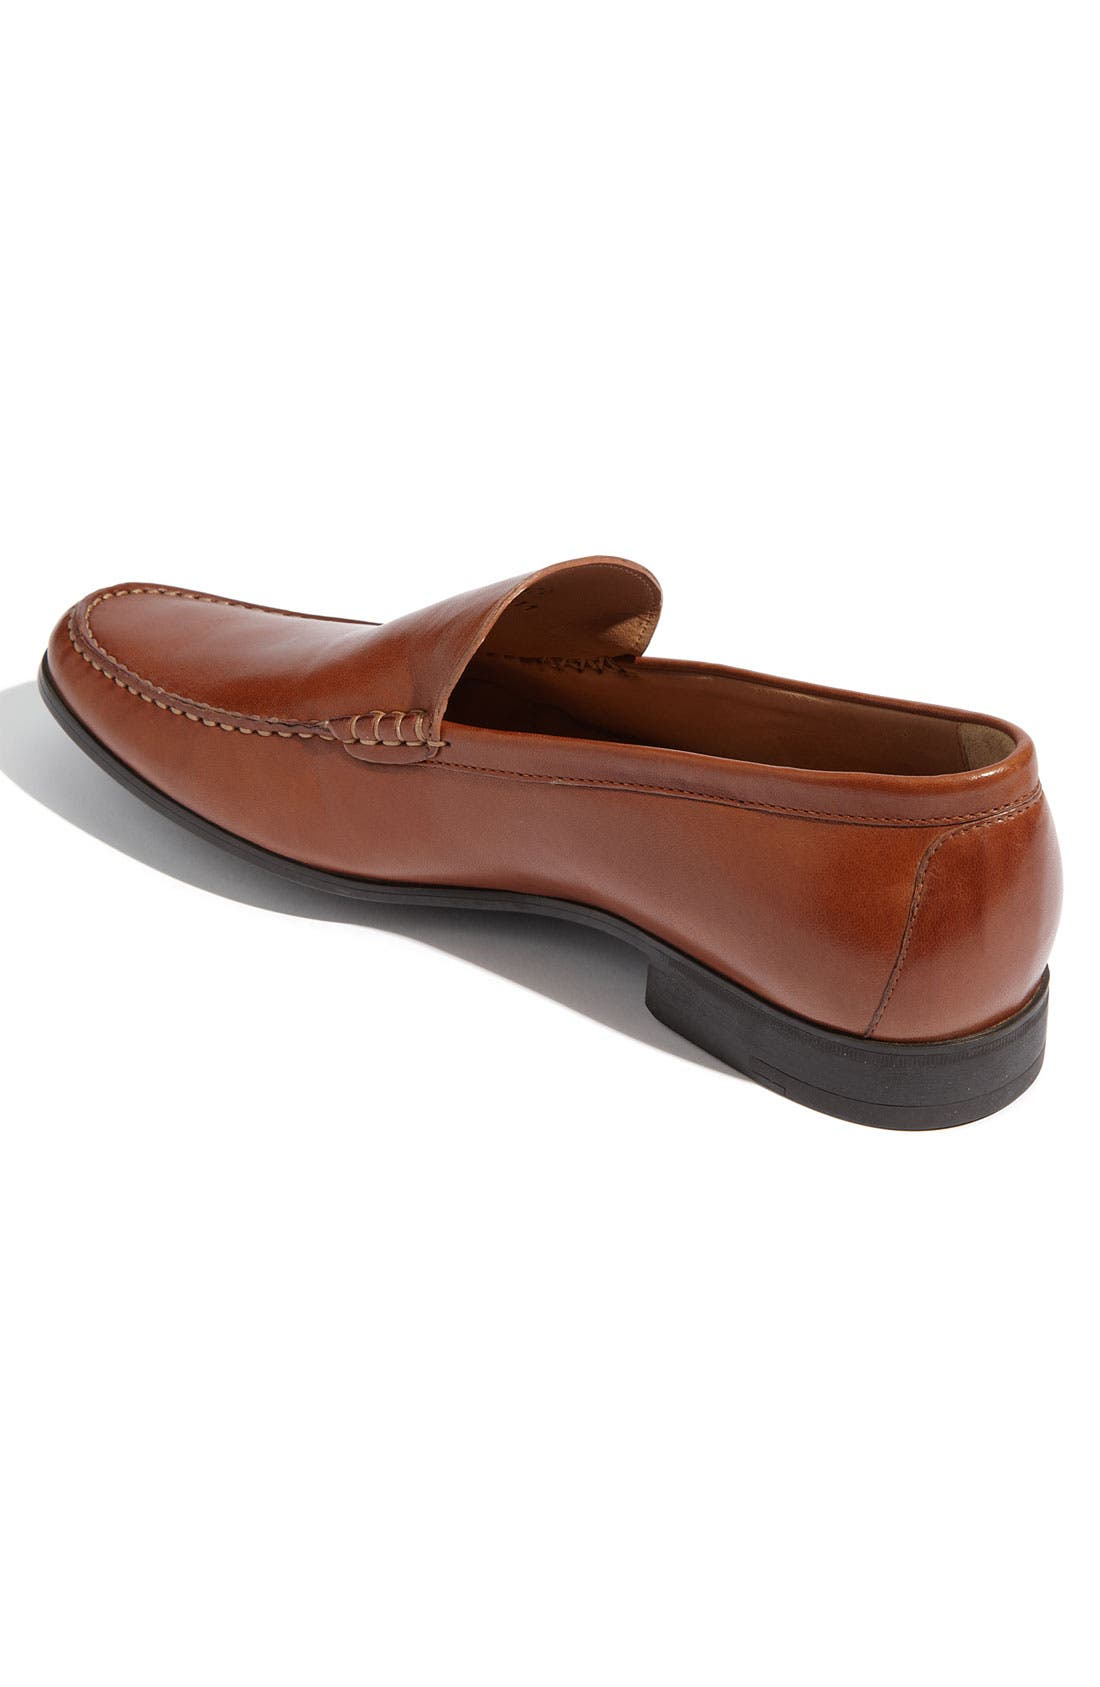 JOHNSTON & MURPHY,                             'Creswell' Venetian Slip-On,                             Alternate thumbnail 2, color,                             COGNAC